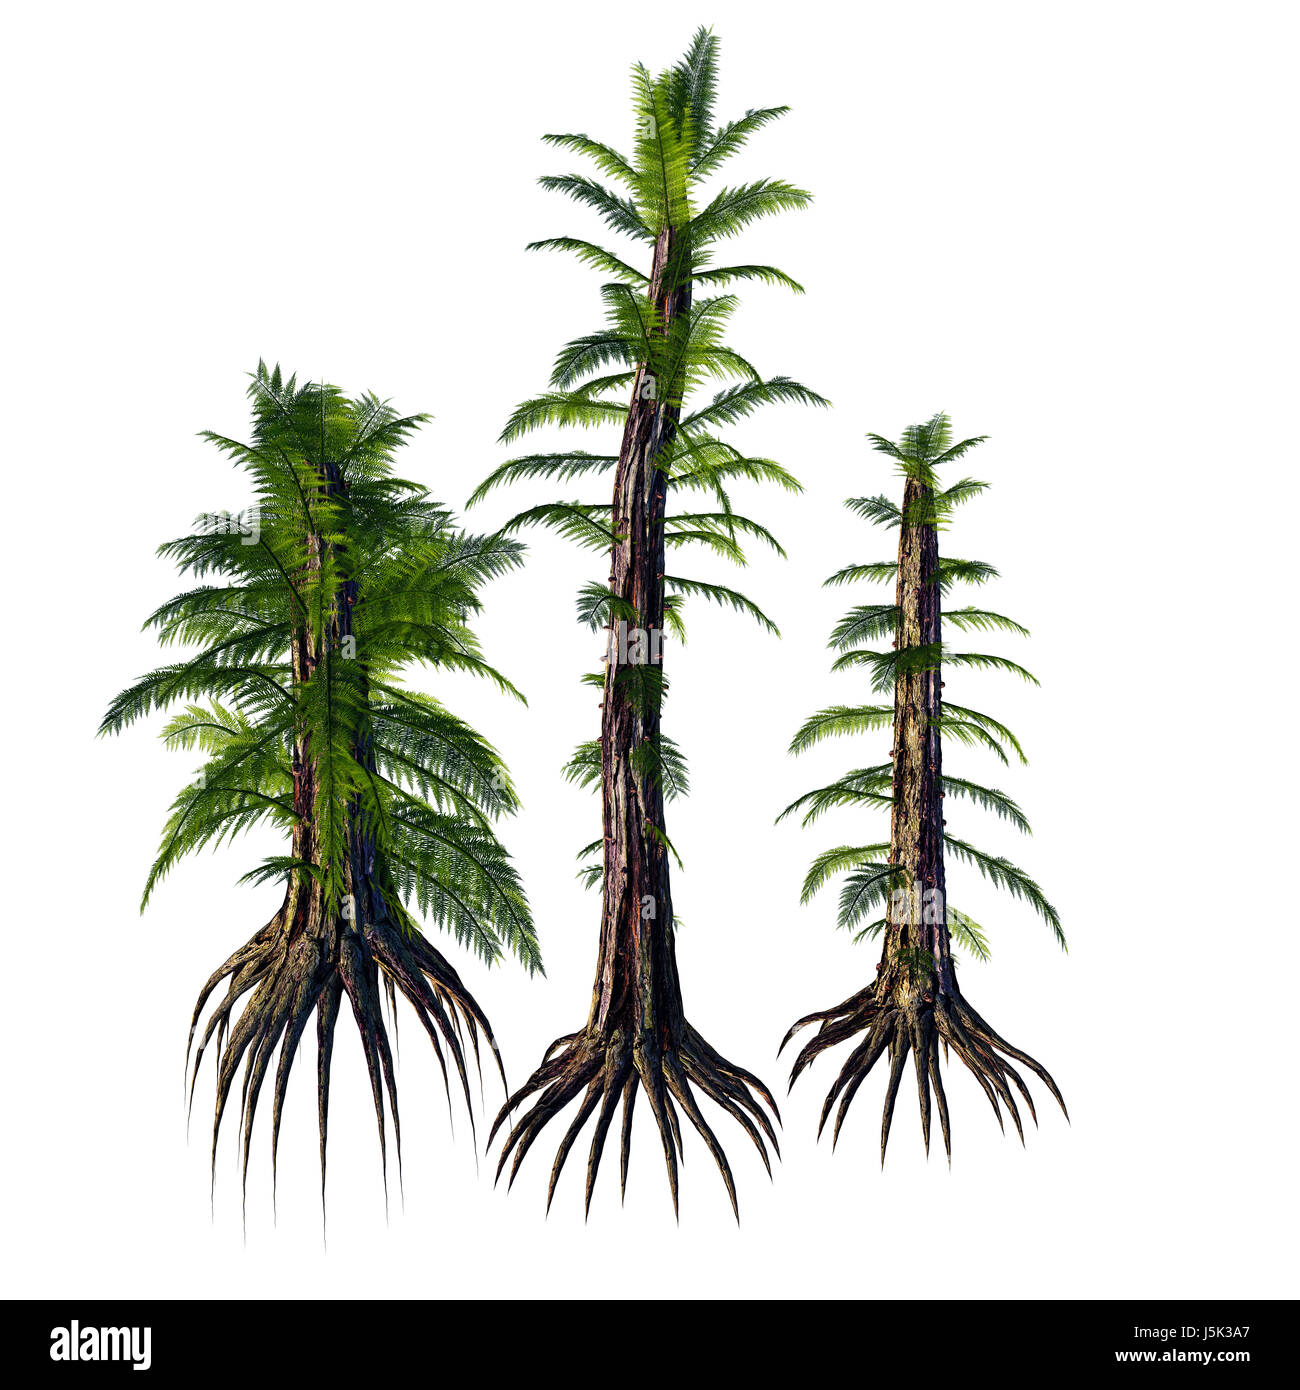 Tempskya is an extinct genus of tree-like fern that lived during the Cretaceous Period. - Stock Image